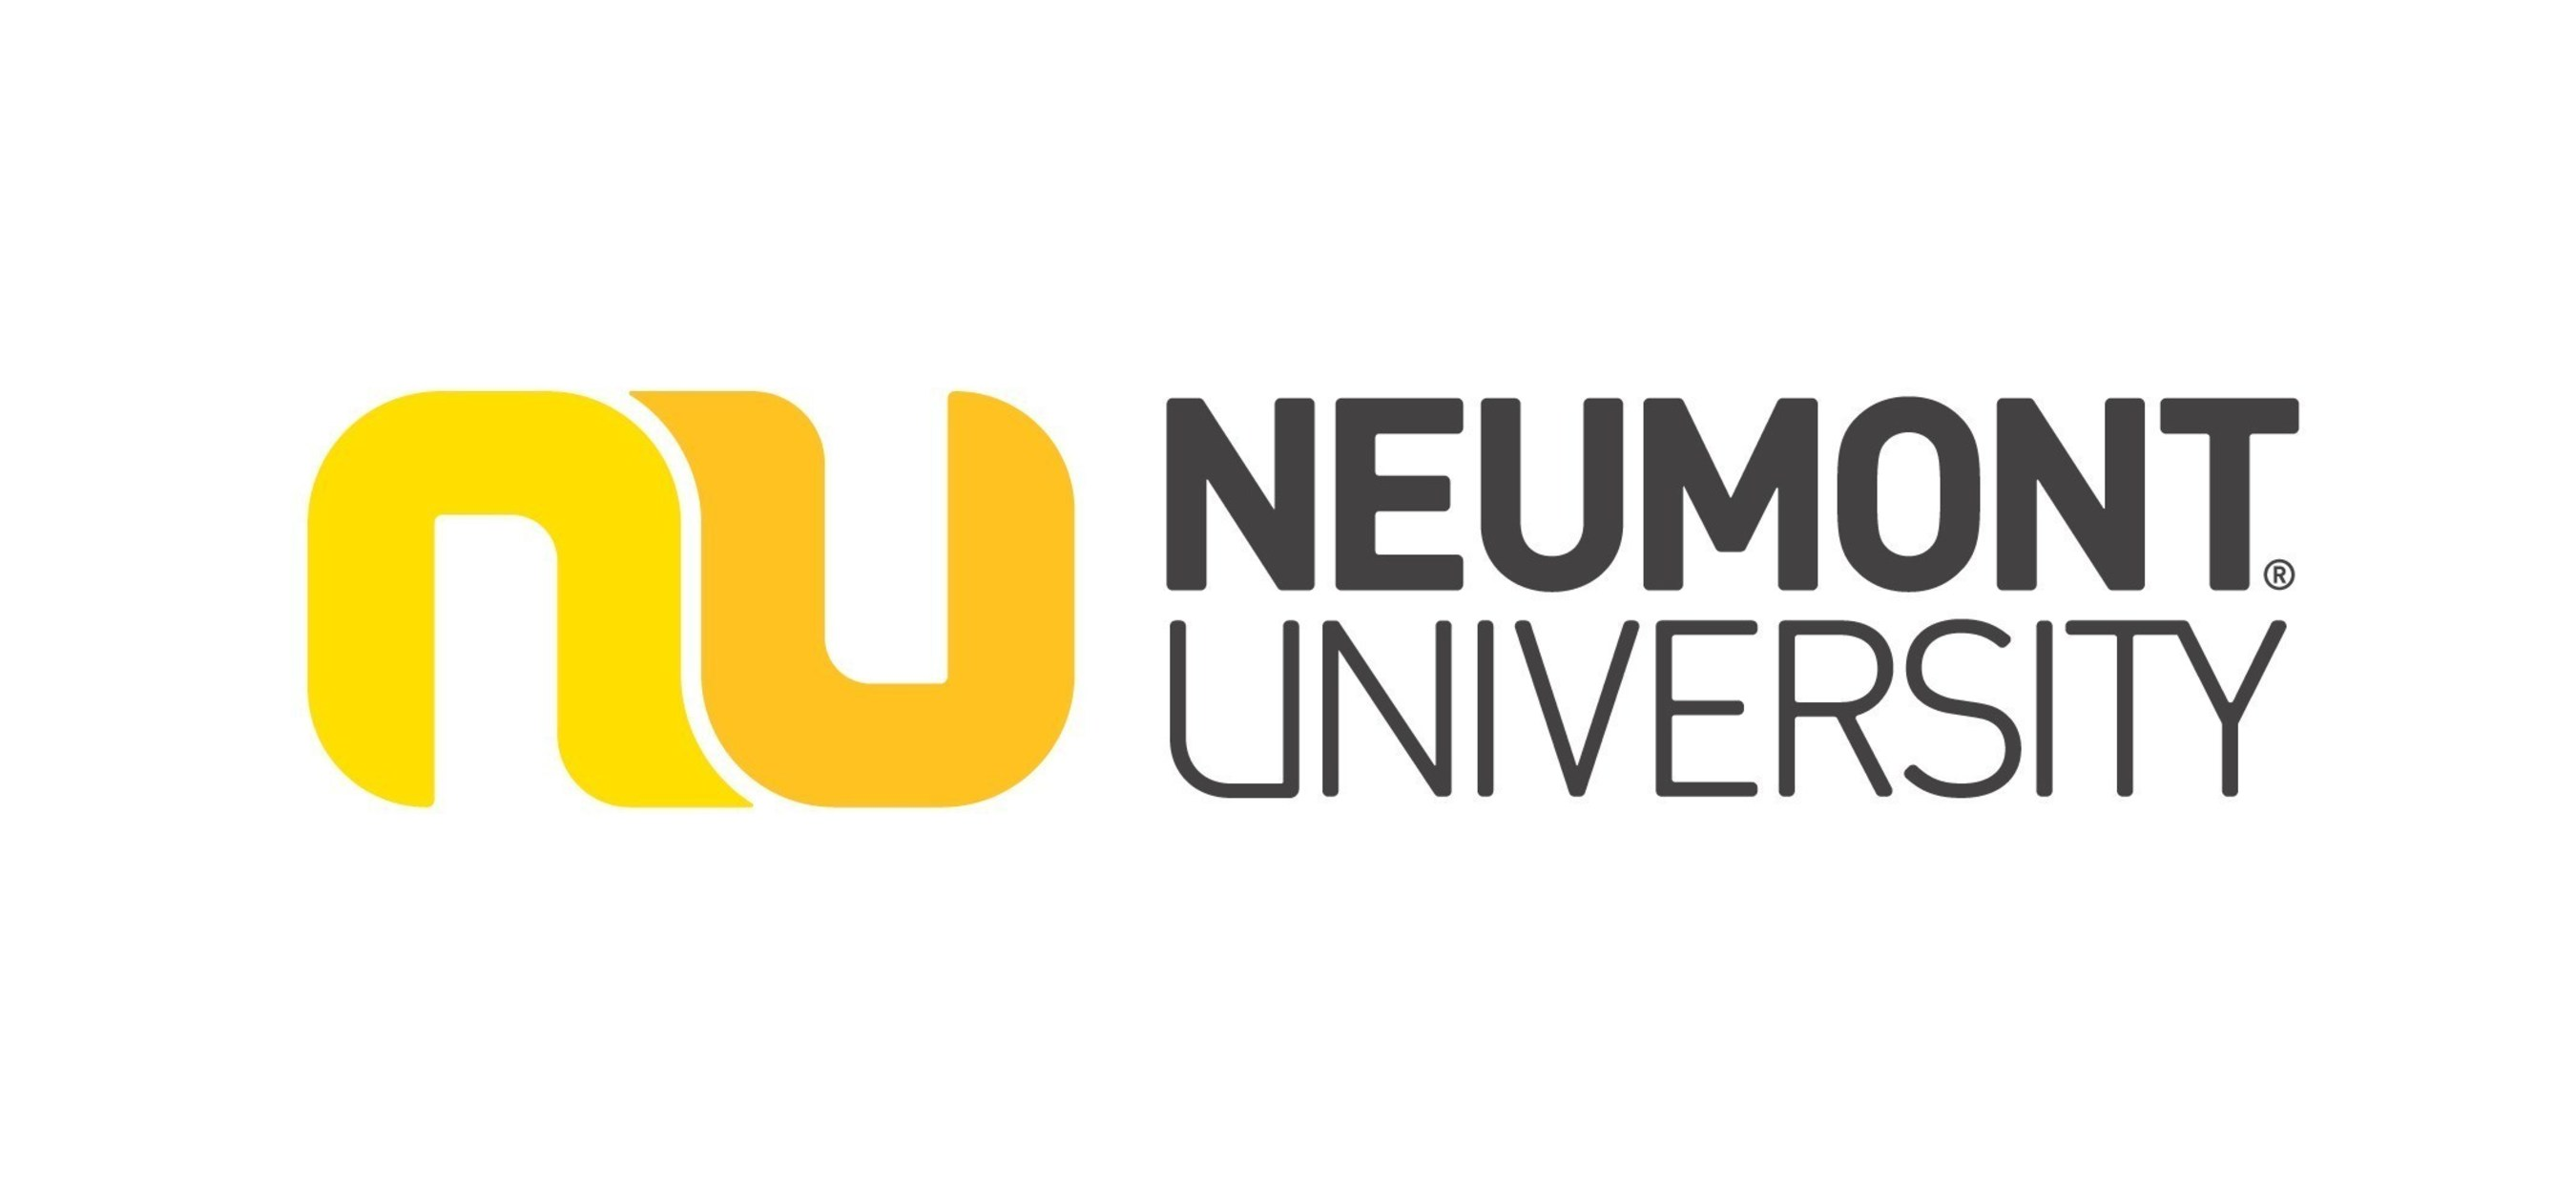 Neumont University Contributes to Utah's Silicon Slopes with Project Showcase